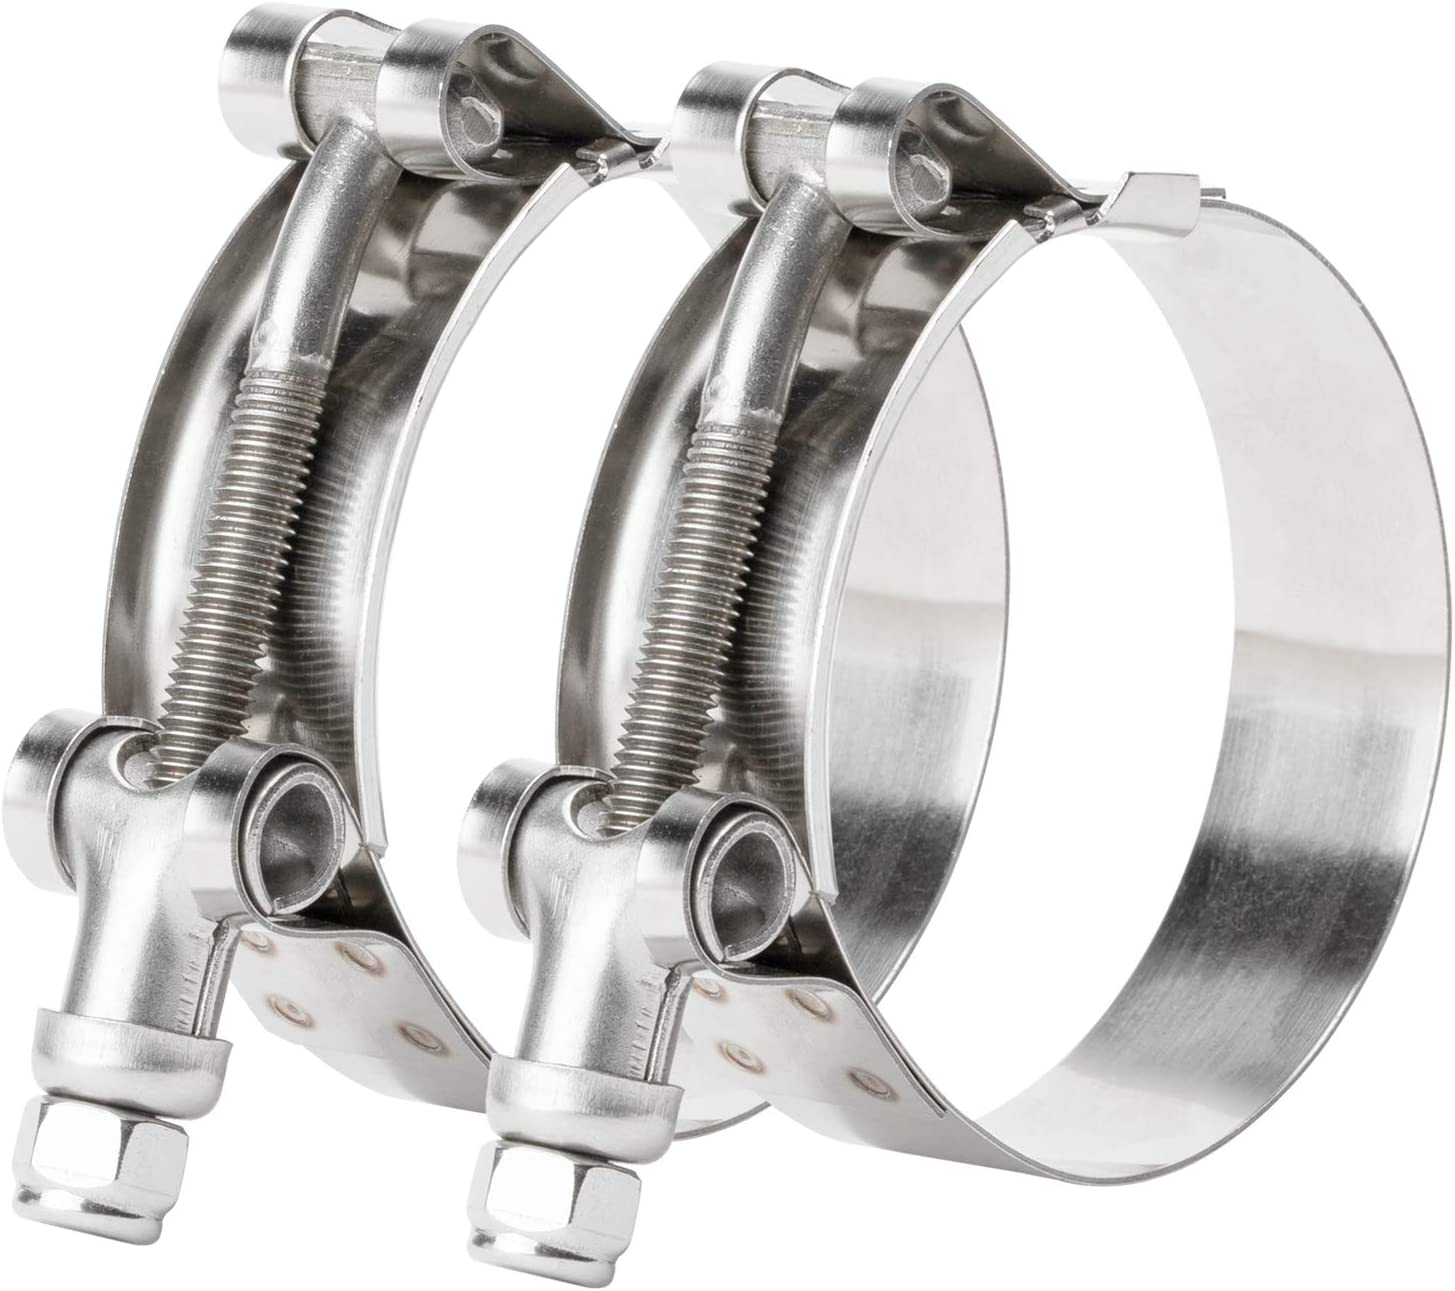 ISPINNER 2 Pack 4.5 Max 77% OFF Inch Stainless T-Bolt Hose Clamps Translated Steel Cla